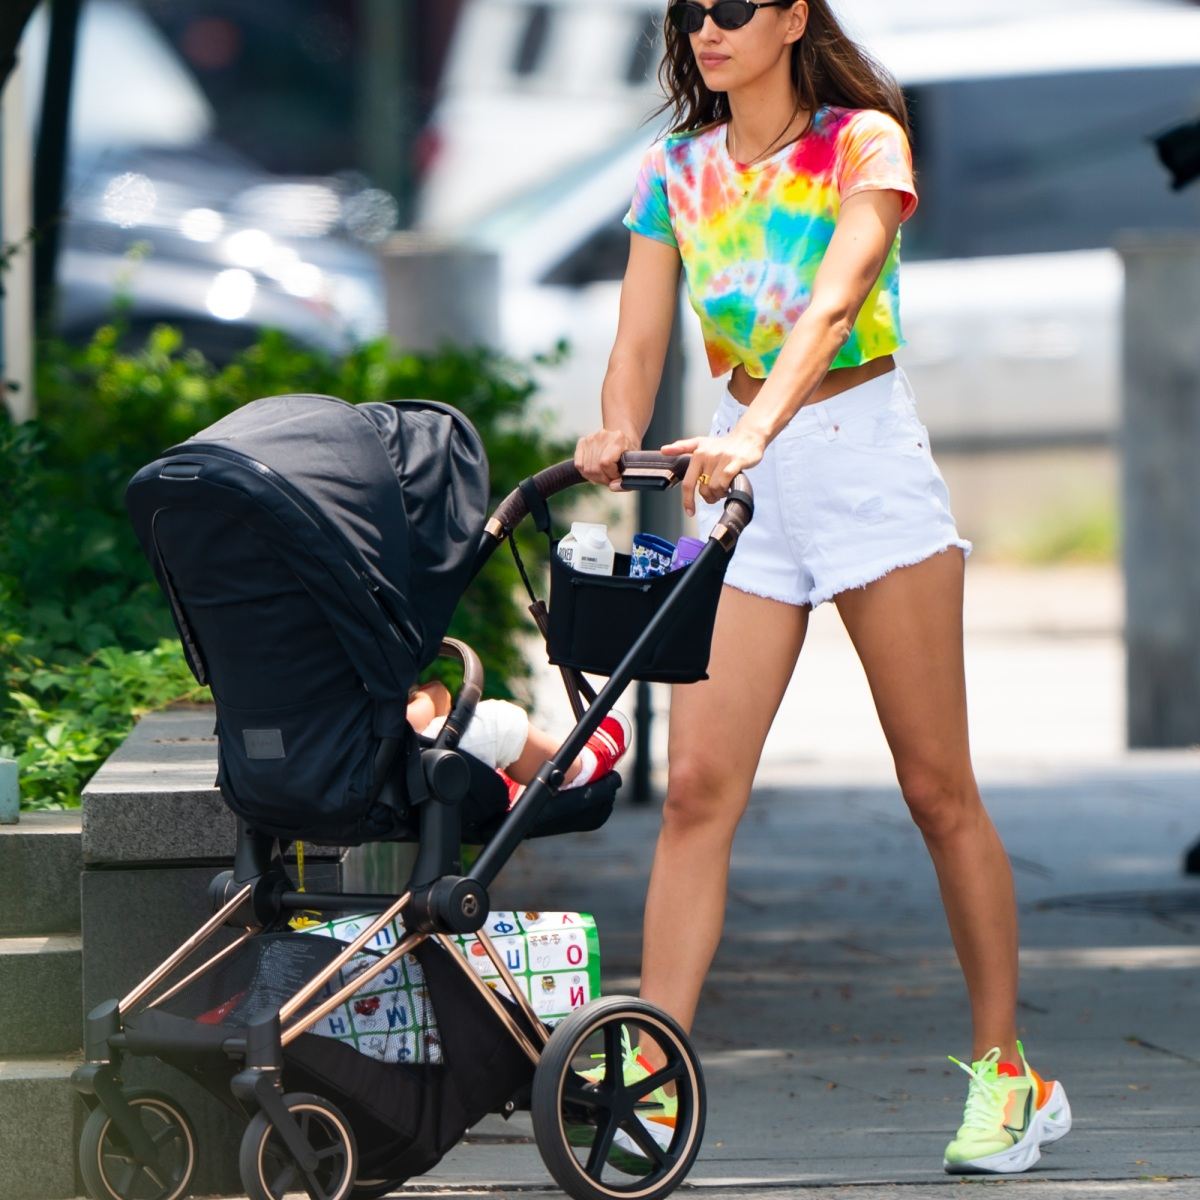 Groovy Mama! Irina Shayk Rocks a Tie-Dye Crop Top and Short-Shorts While Strolling With Daughter Lea